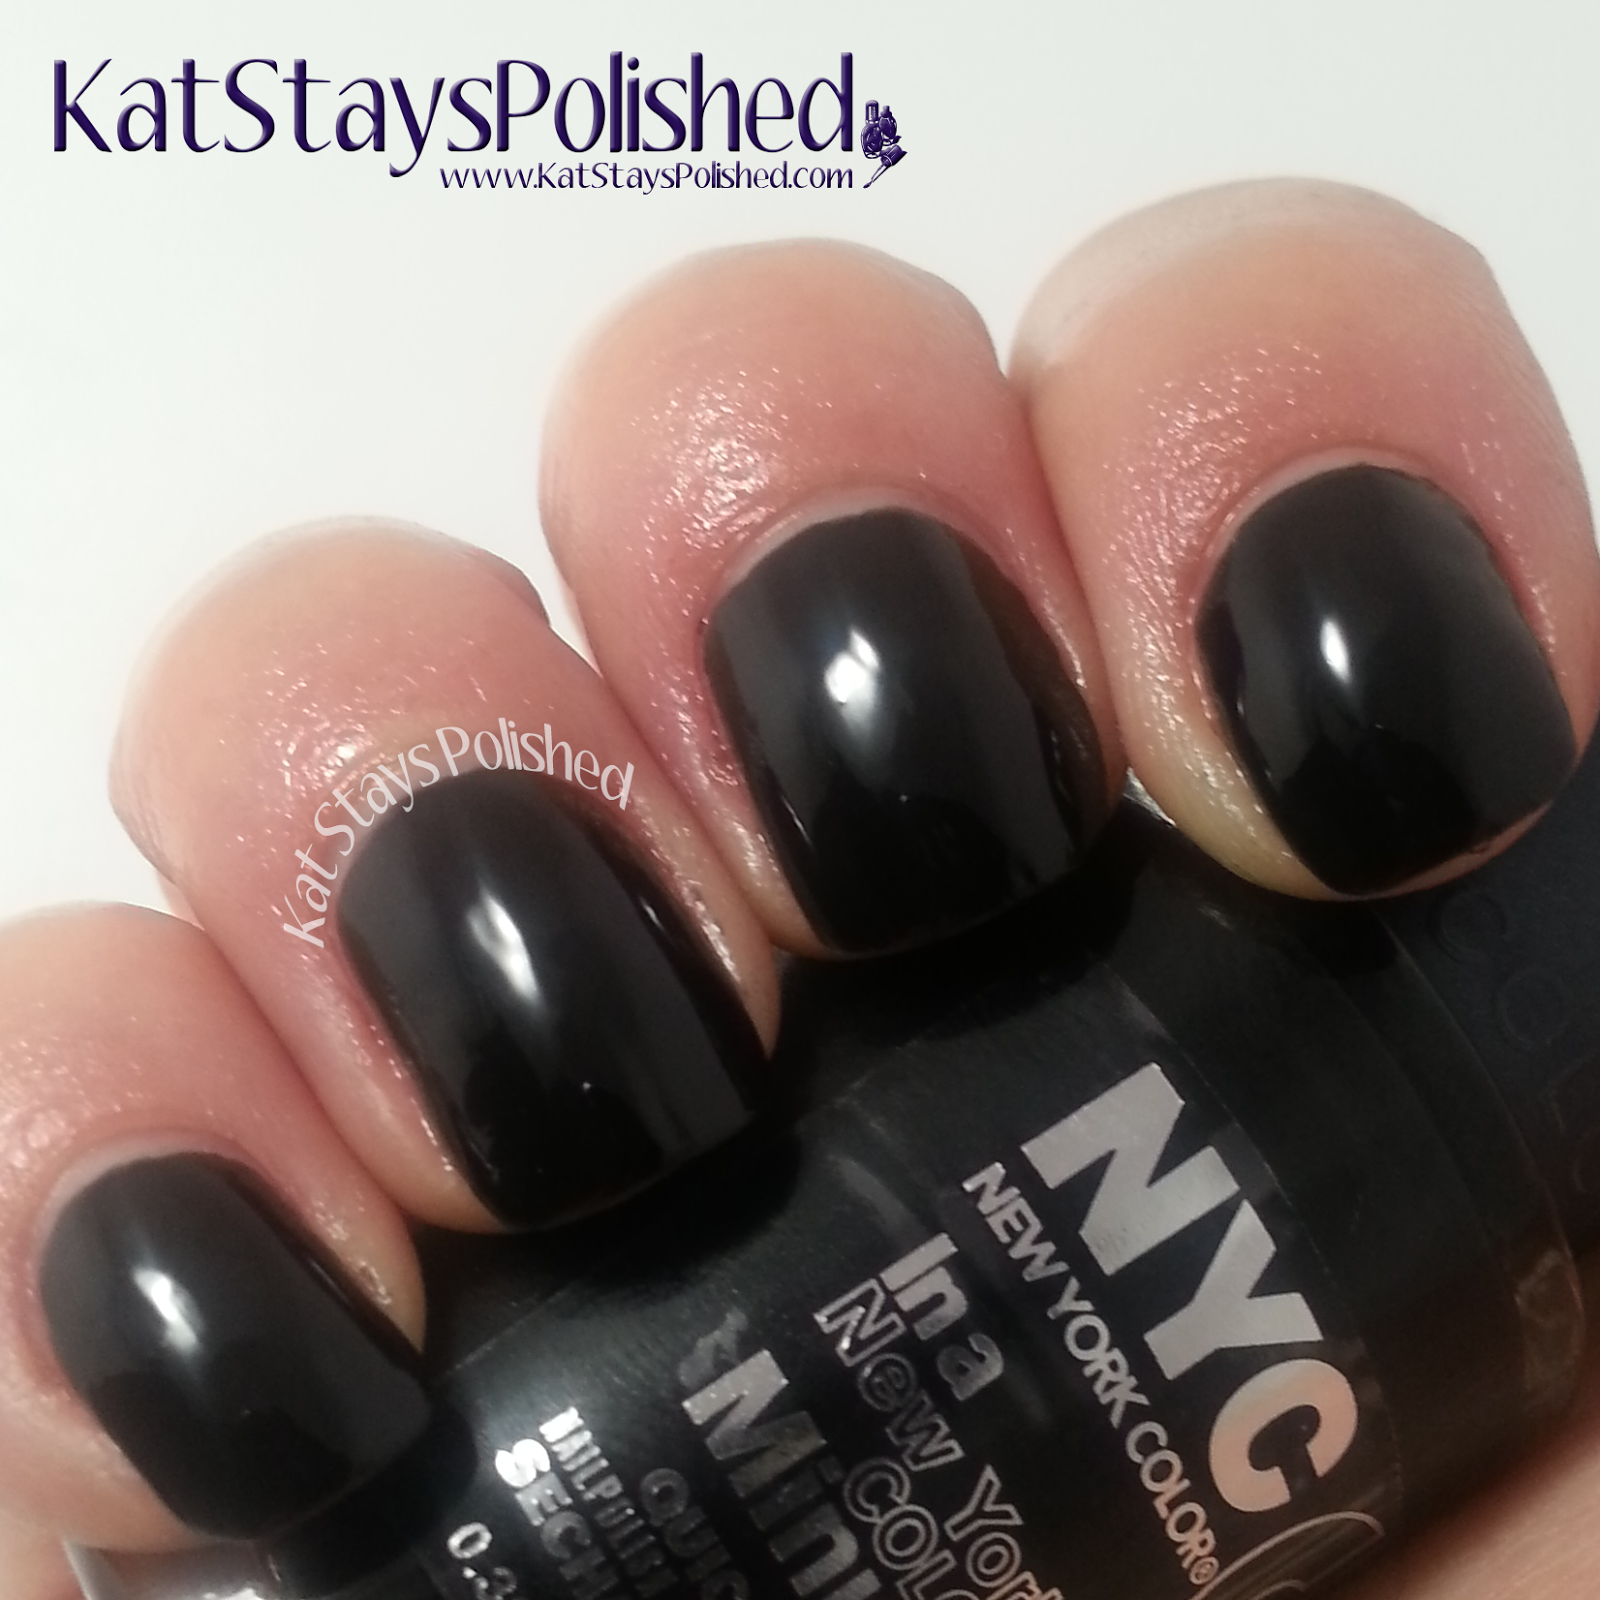 NYC New York Color - Midnight Beauty Collection - Black Elixir | Kat Stays Polished